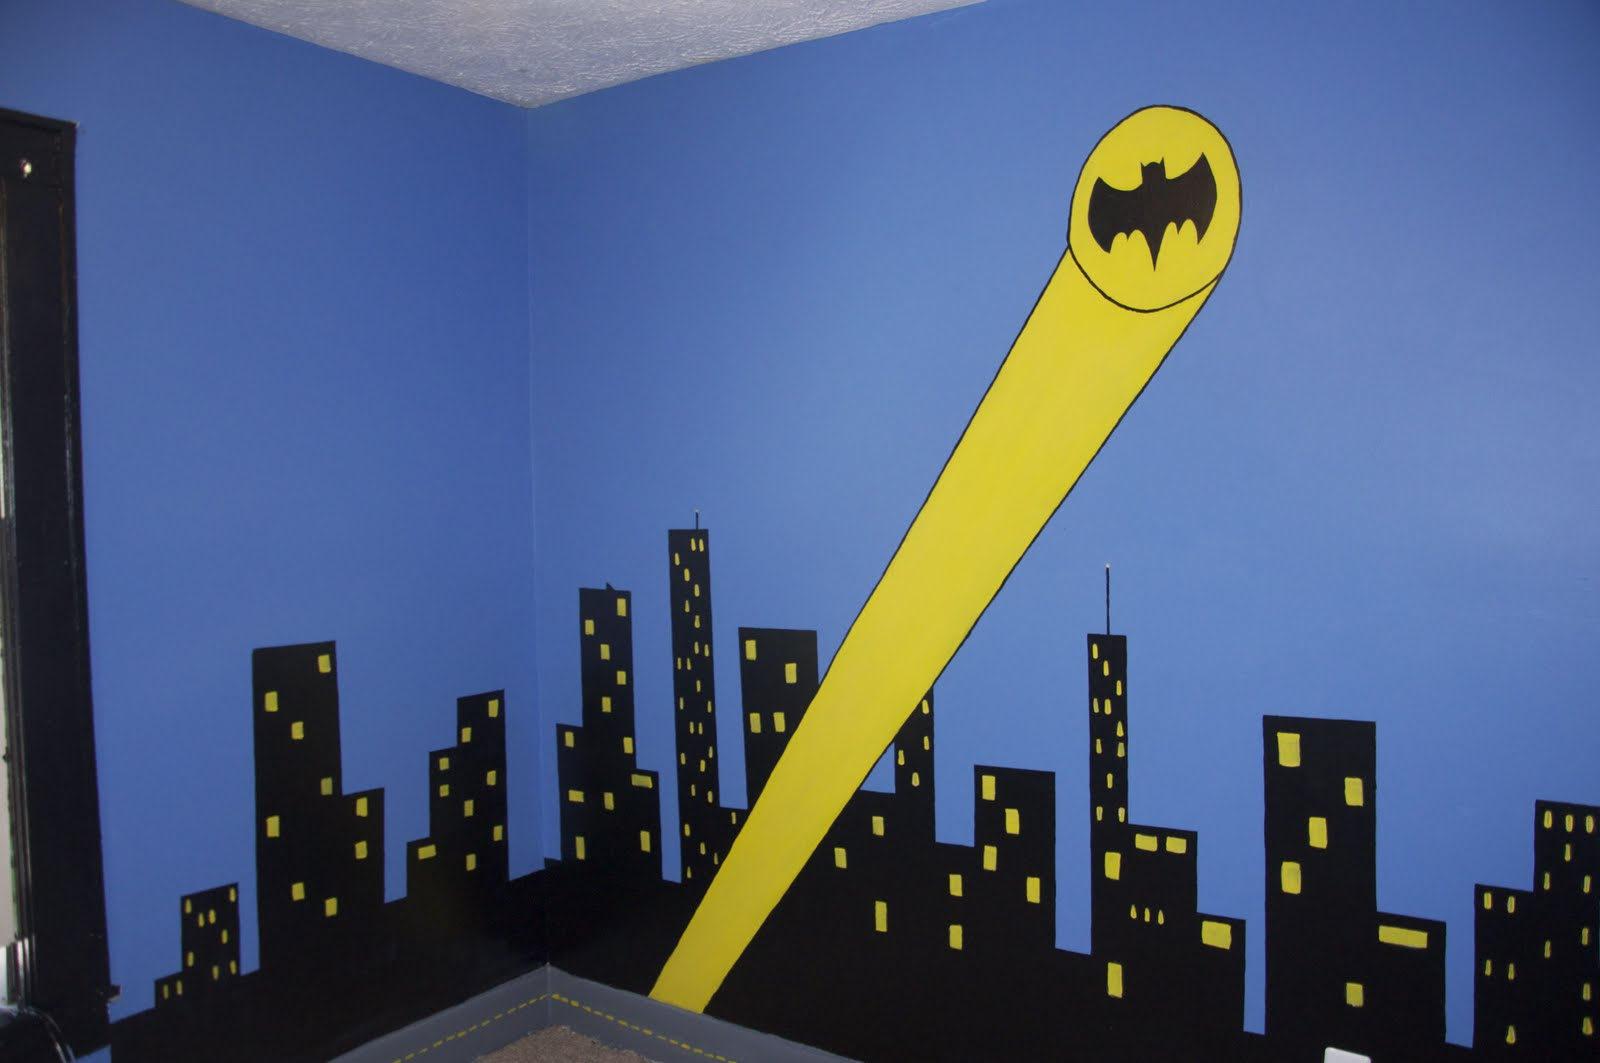 Creative Eyedias: Sleeping in Gotham City - A Batman Bedroom